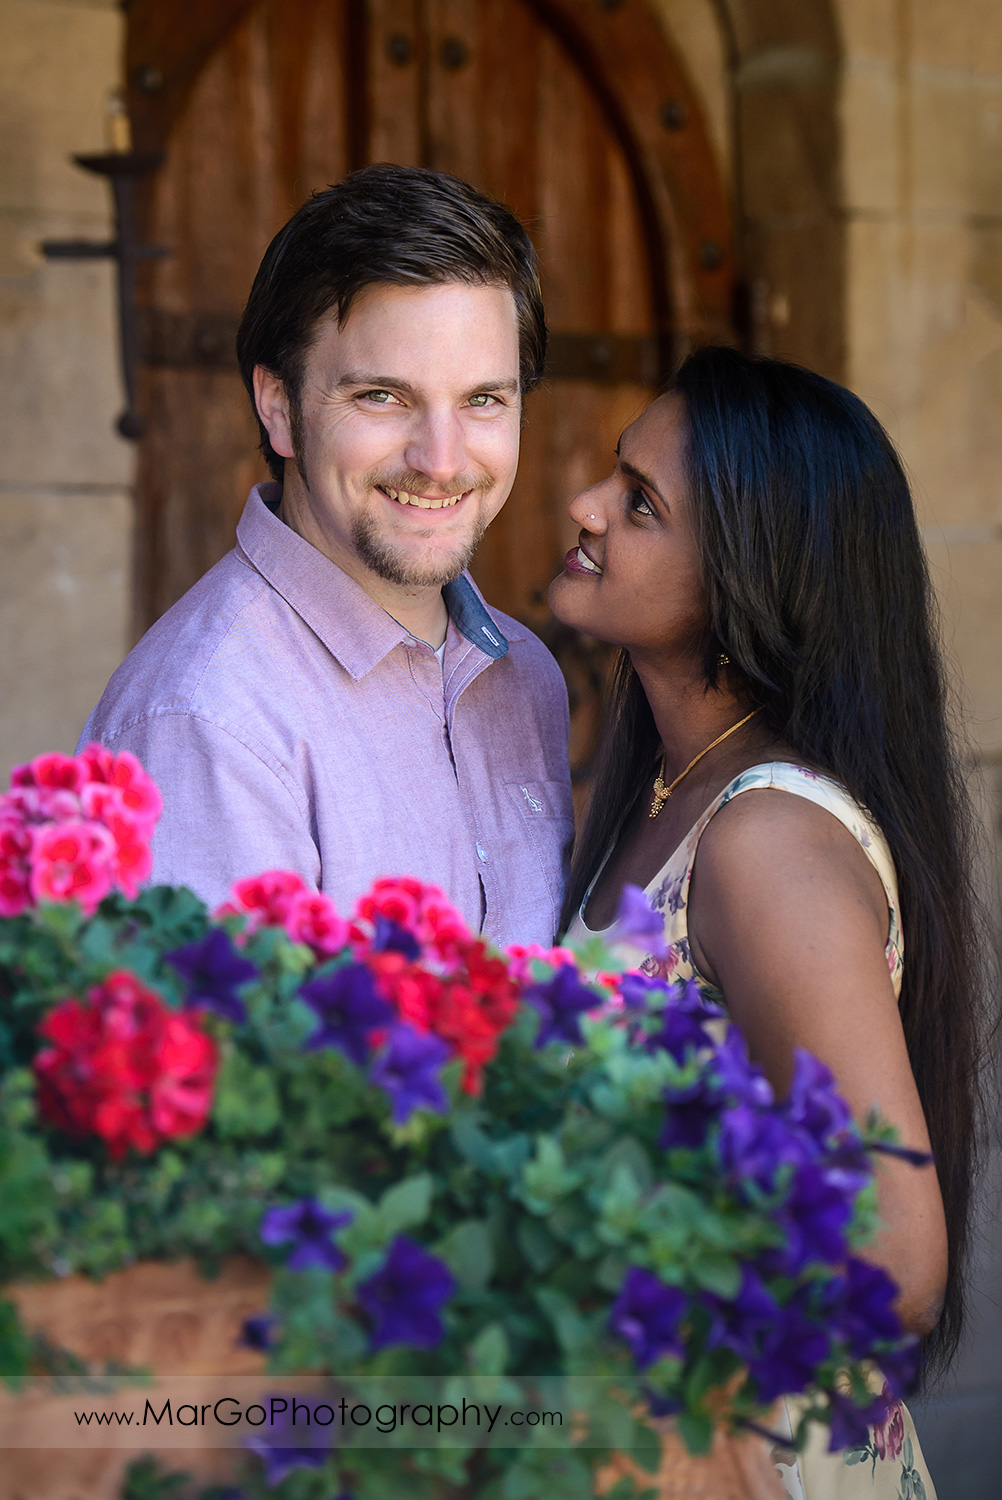 portrait of Indian woman in flower dress looking at man in pink shirt looking into camera during engagement session at Castello di Amorosa in Calistoga